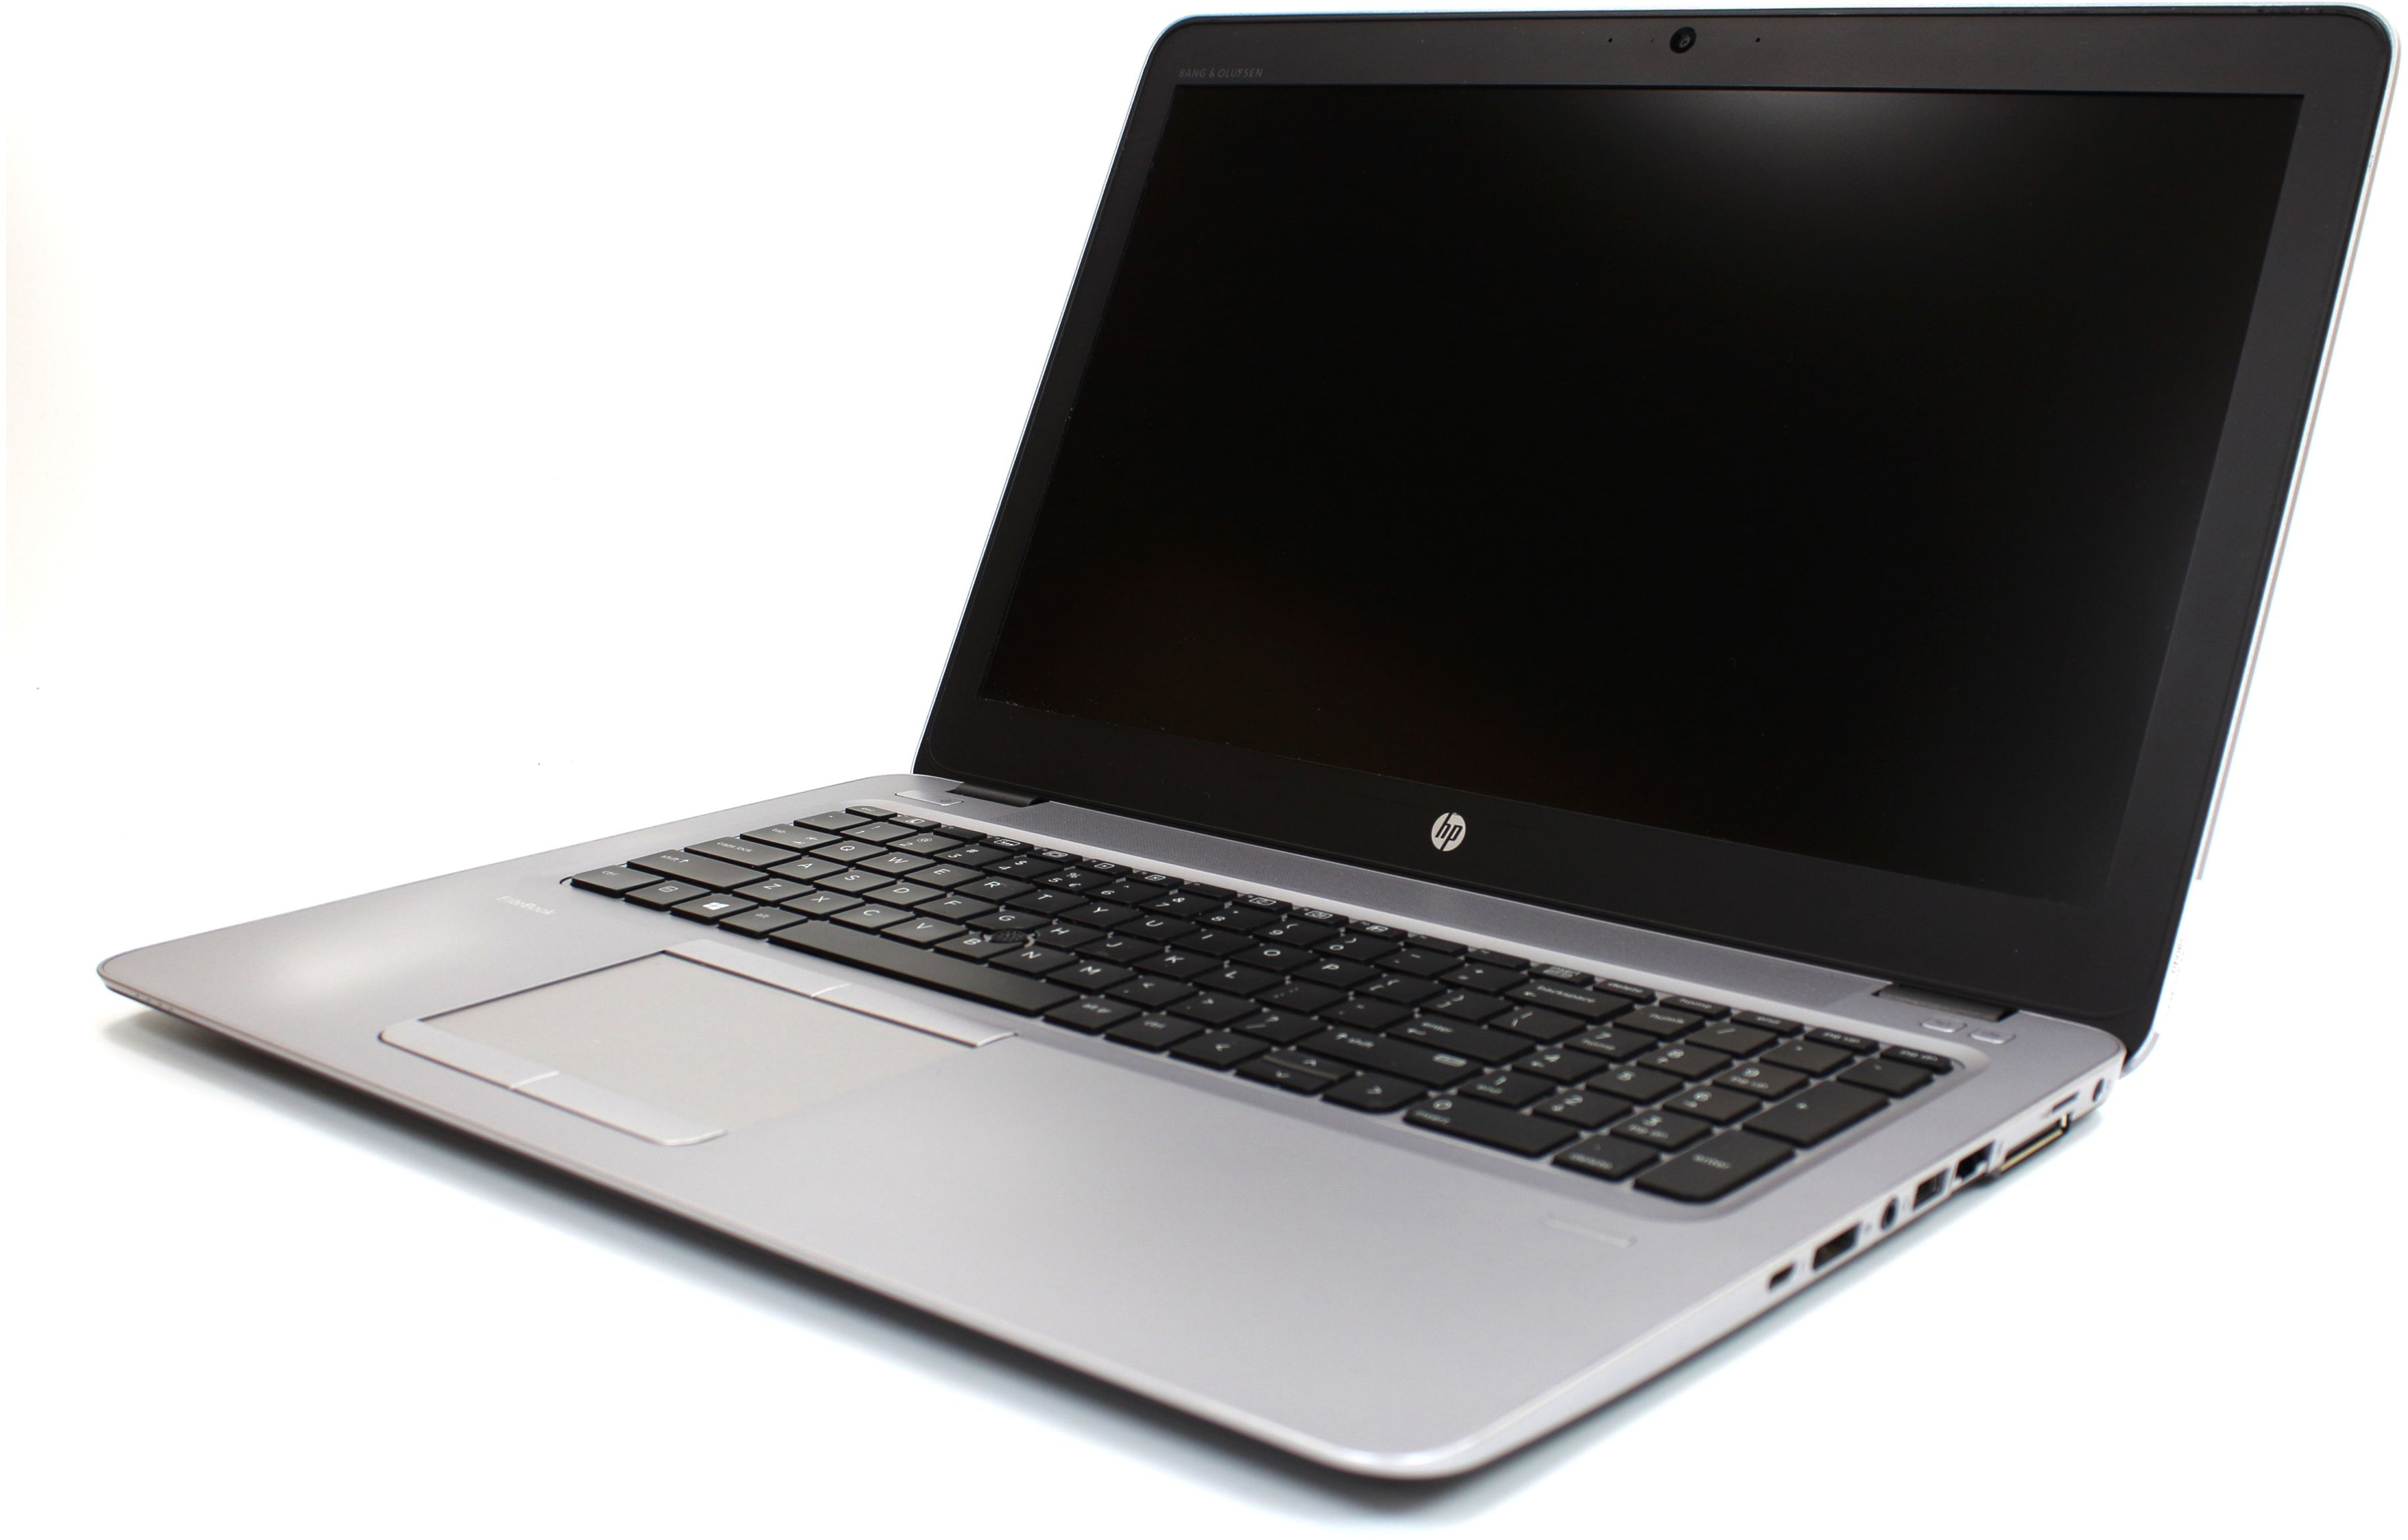 "Laptop HP EliteBook 850 G3 15.6"" FHD i5-6300U 8GB 256GB SSD Kamera Windows 7/8/10 Pro (Klasa A-)"